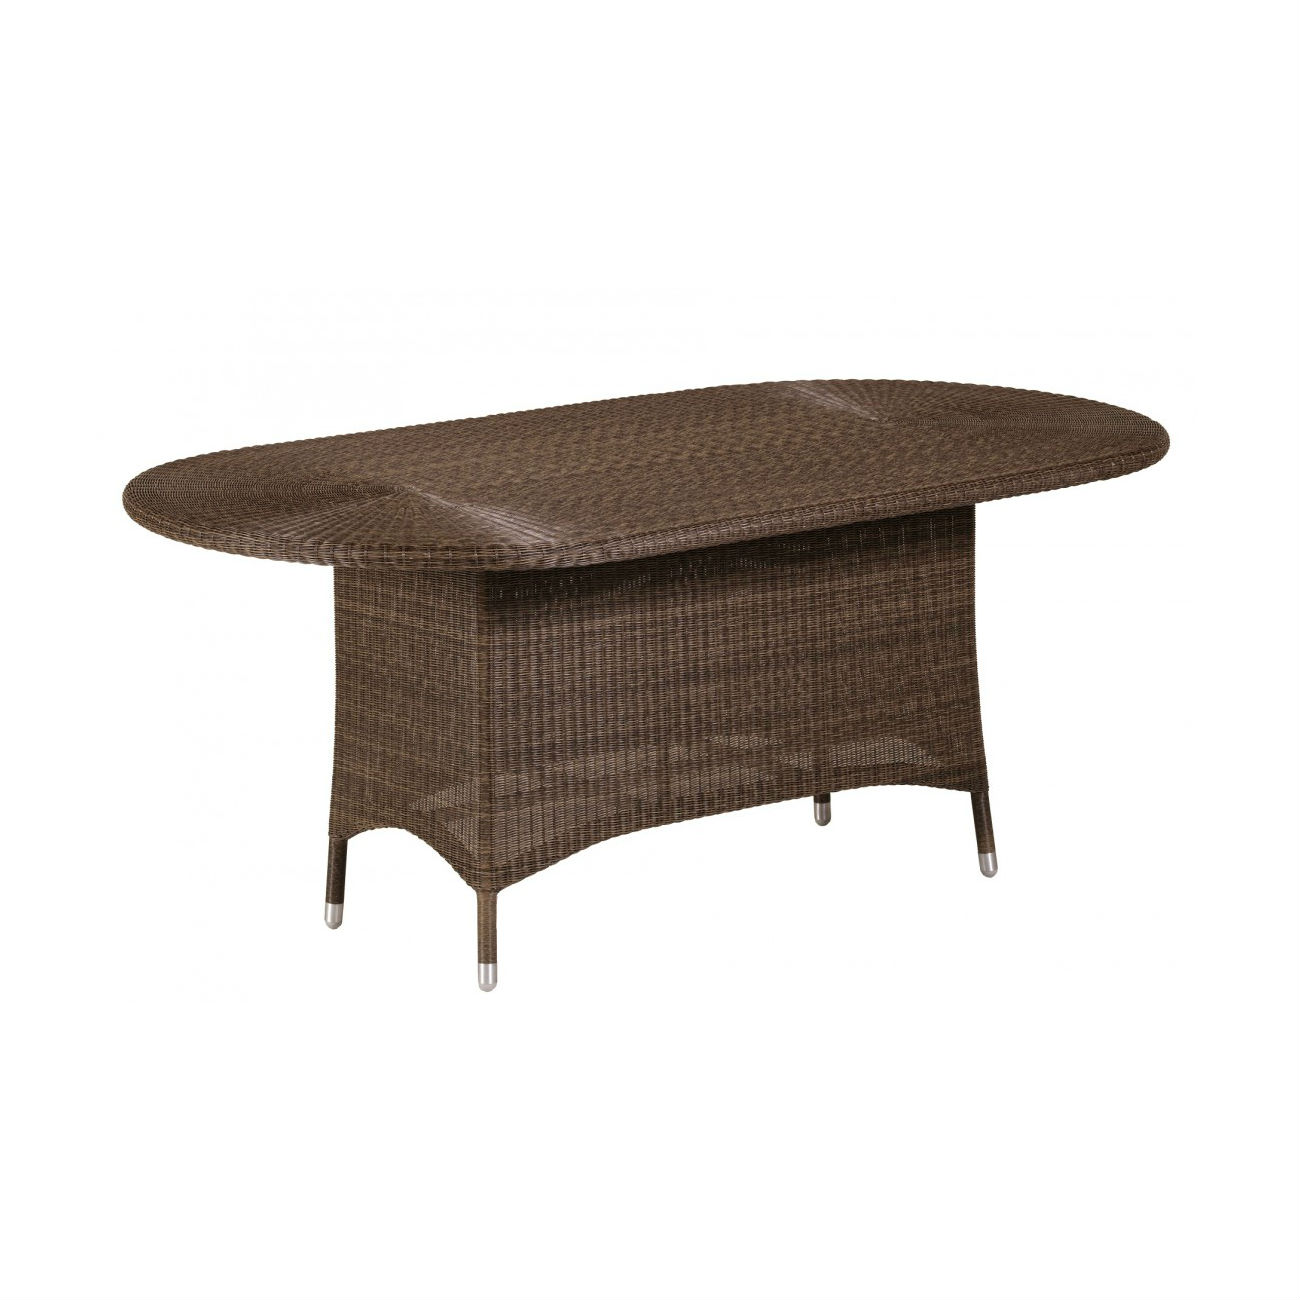 Table Tressee Exterieur Table Resine Tressee Table En Resine Tressee Maison